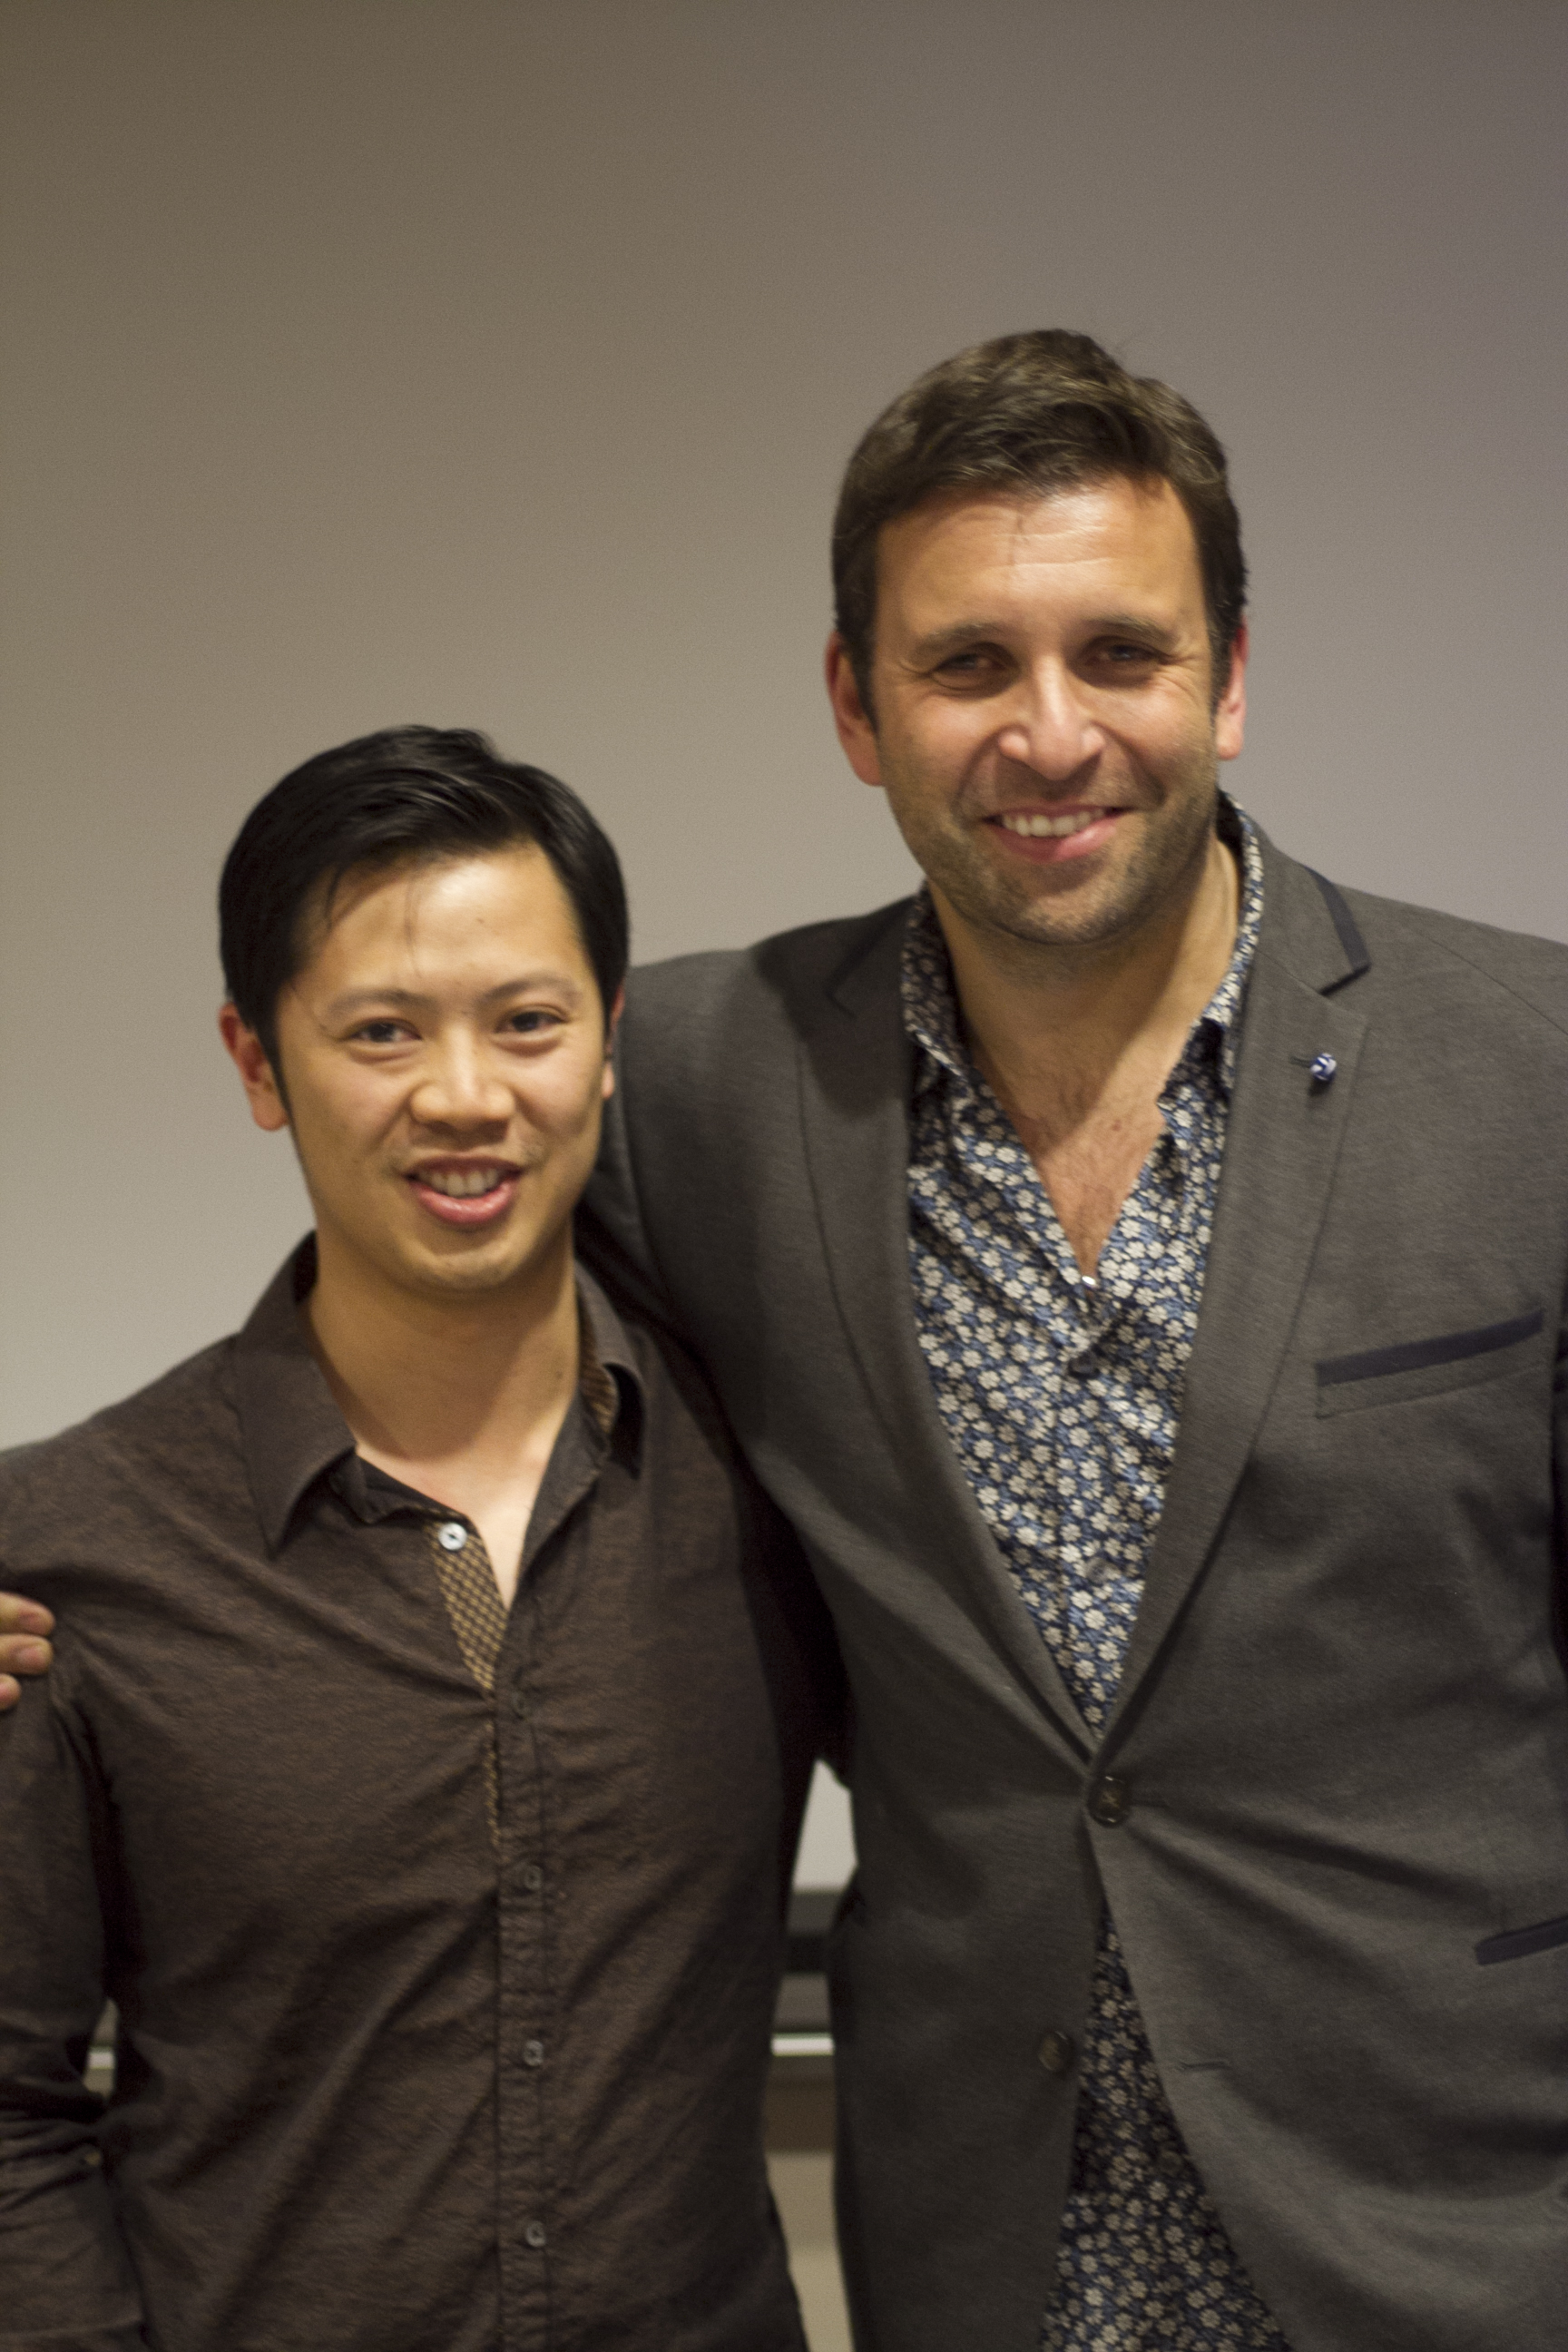 Greg Hung & Philip Bloom